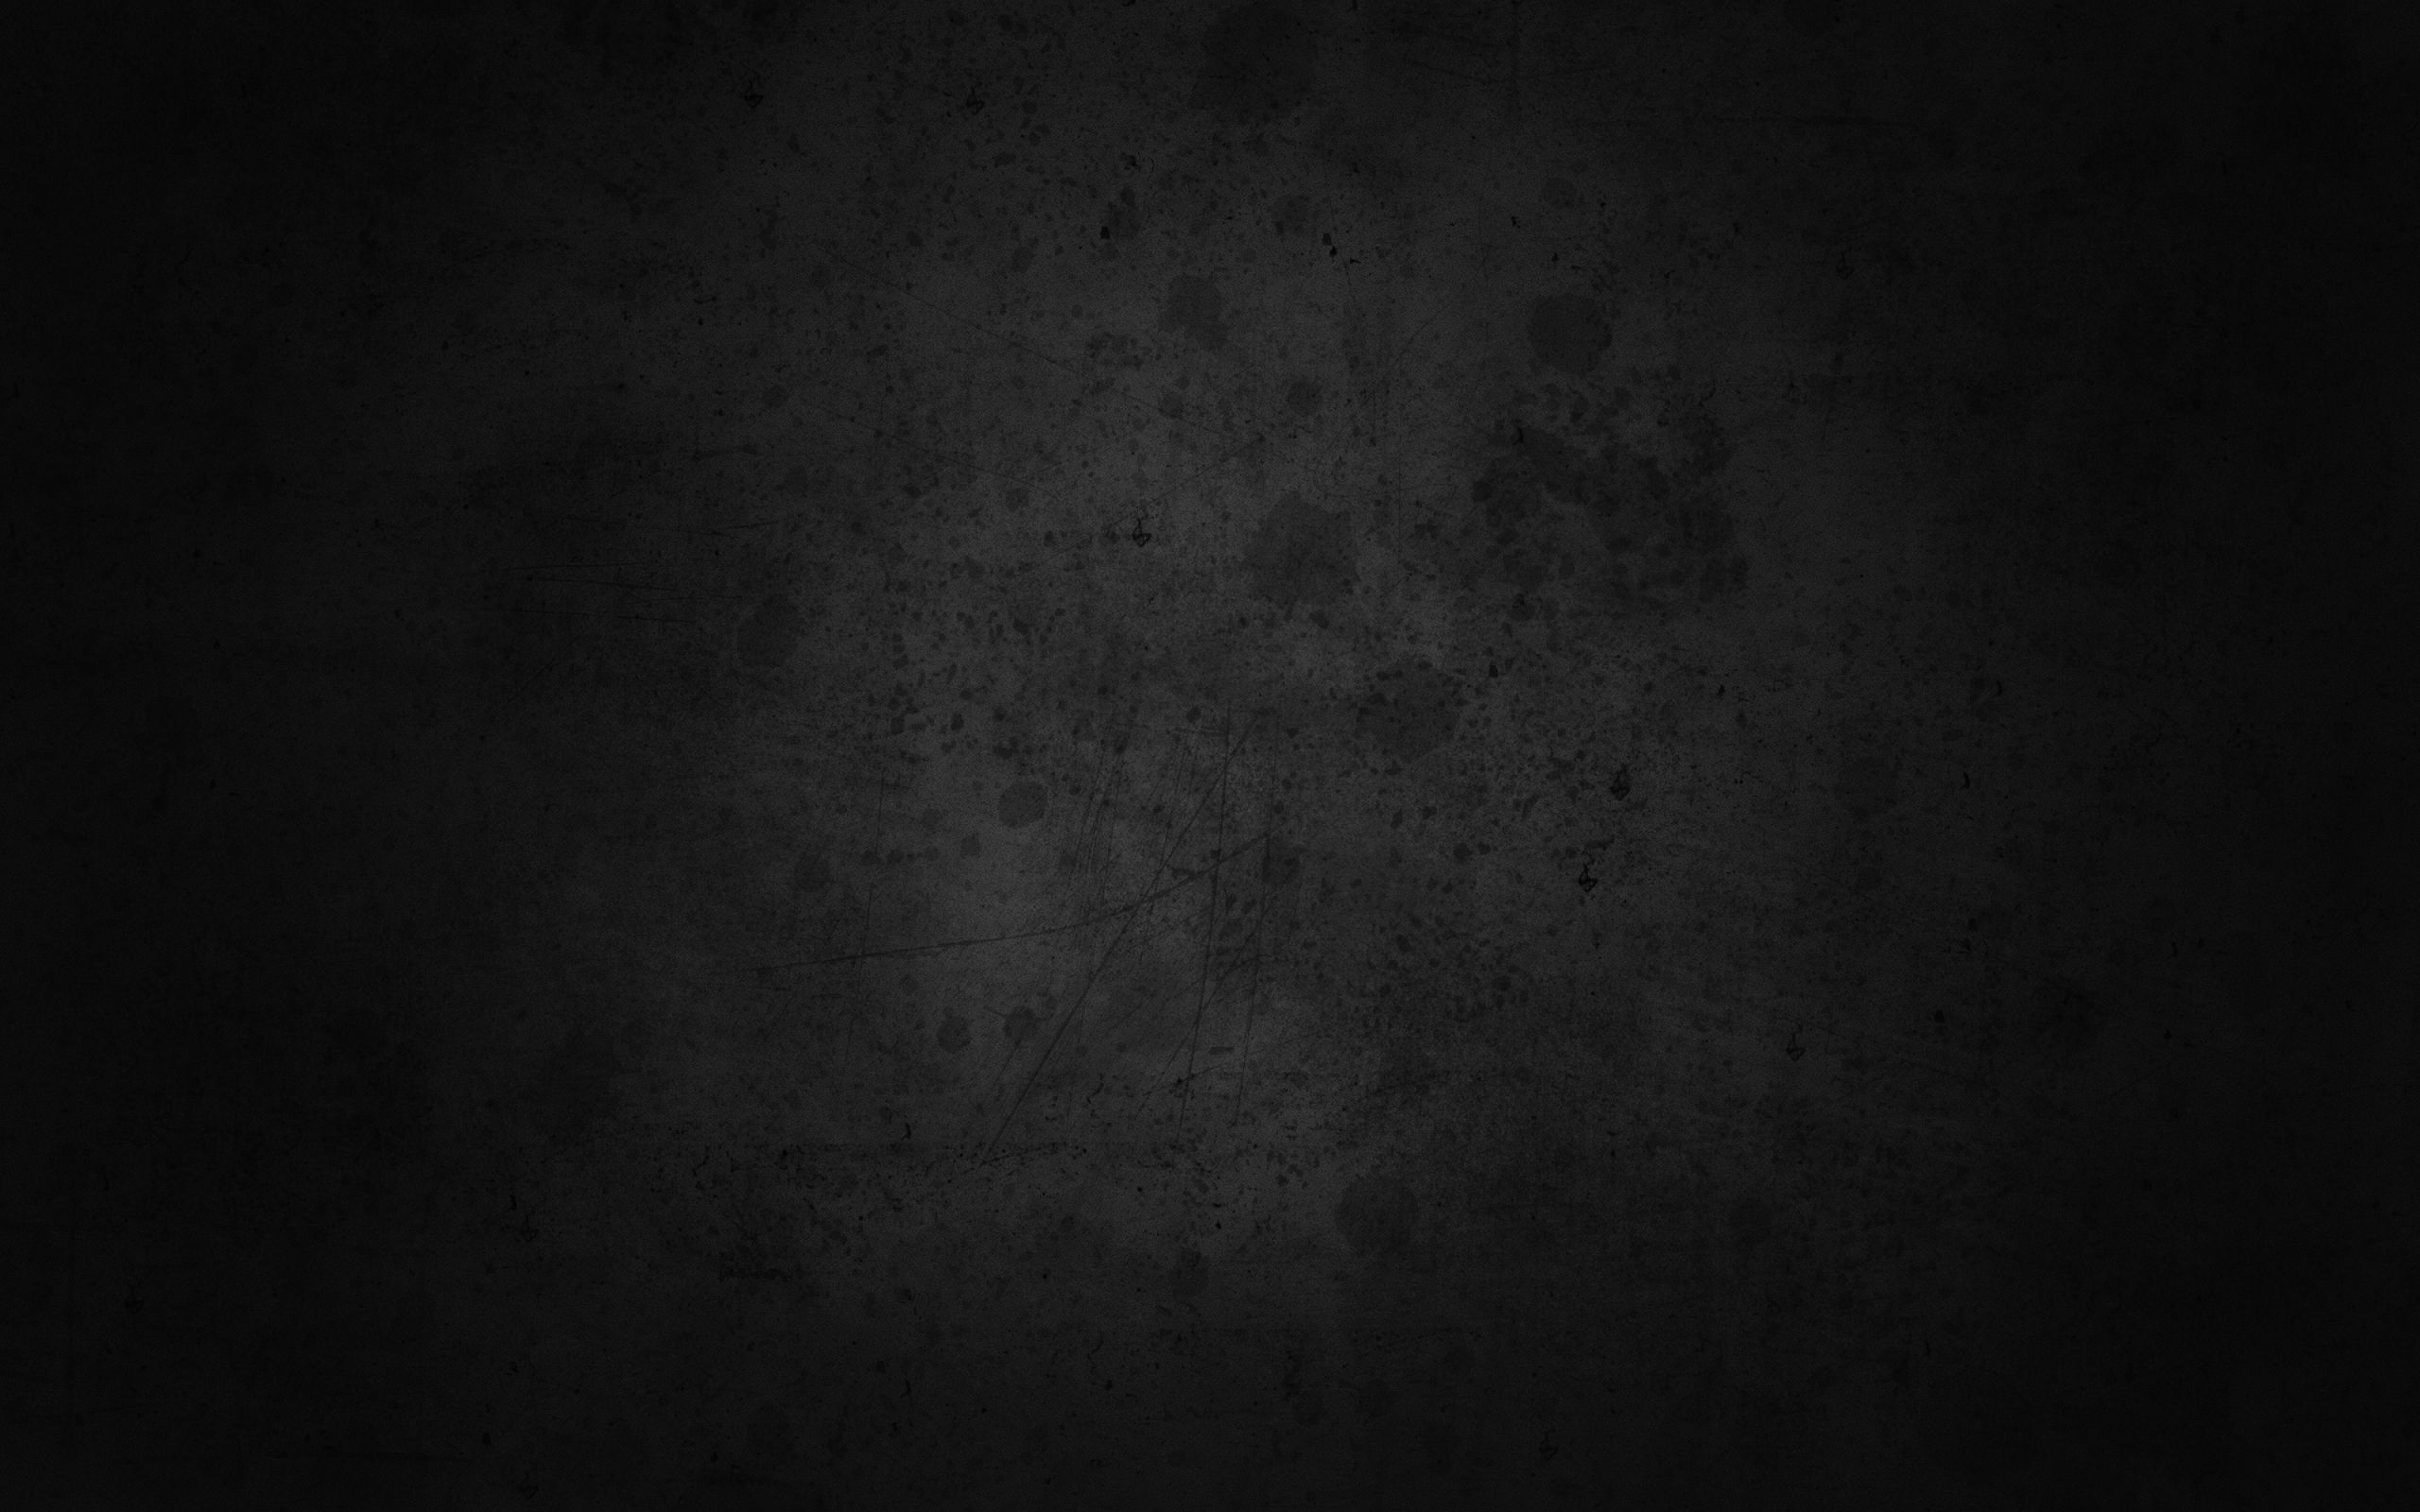 Black And Purple Abstract Widescreen Hd Wallpaper 512: Black And Purple Abstract Widescreen Background Wallpaper